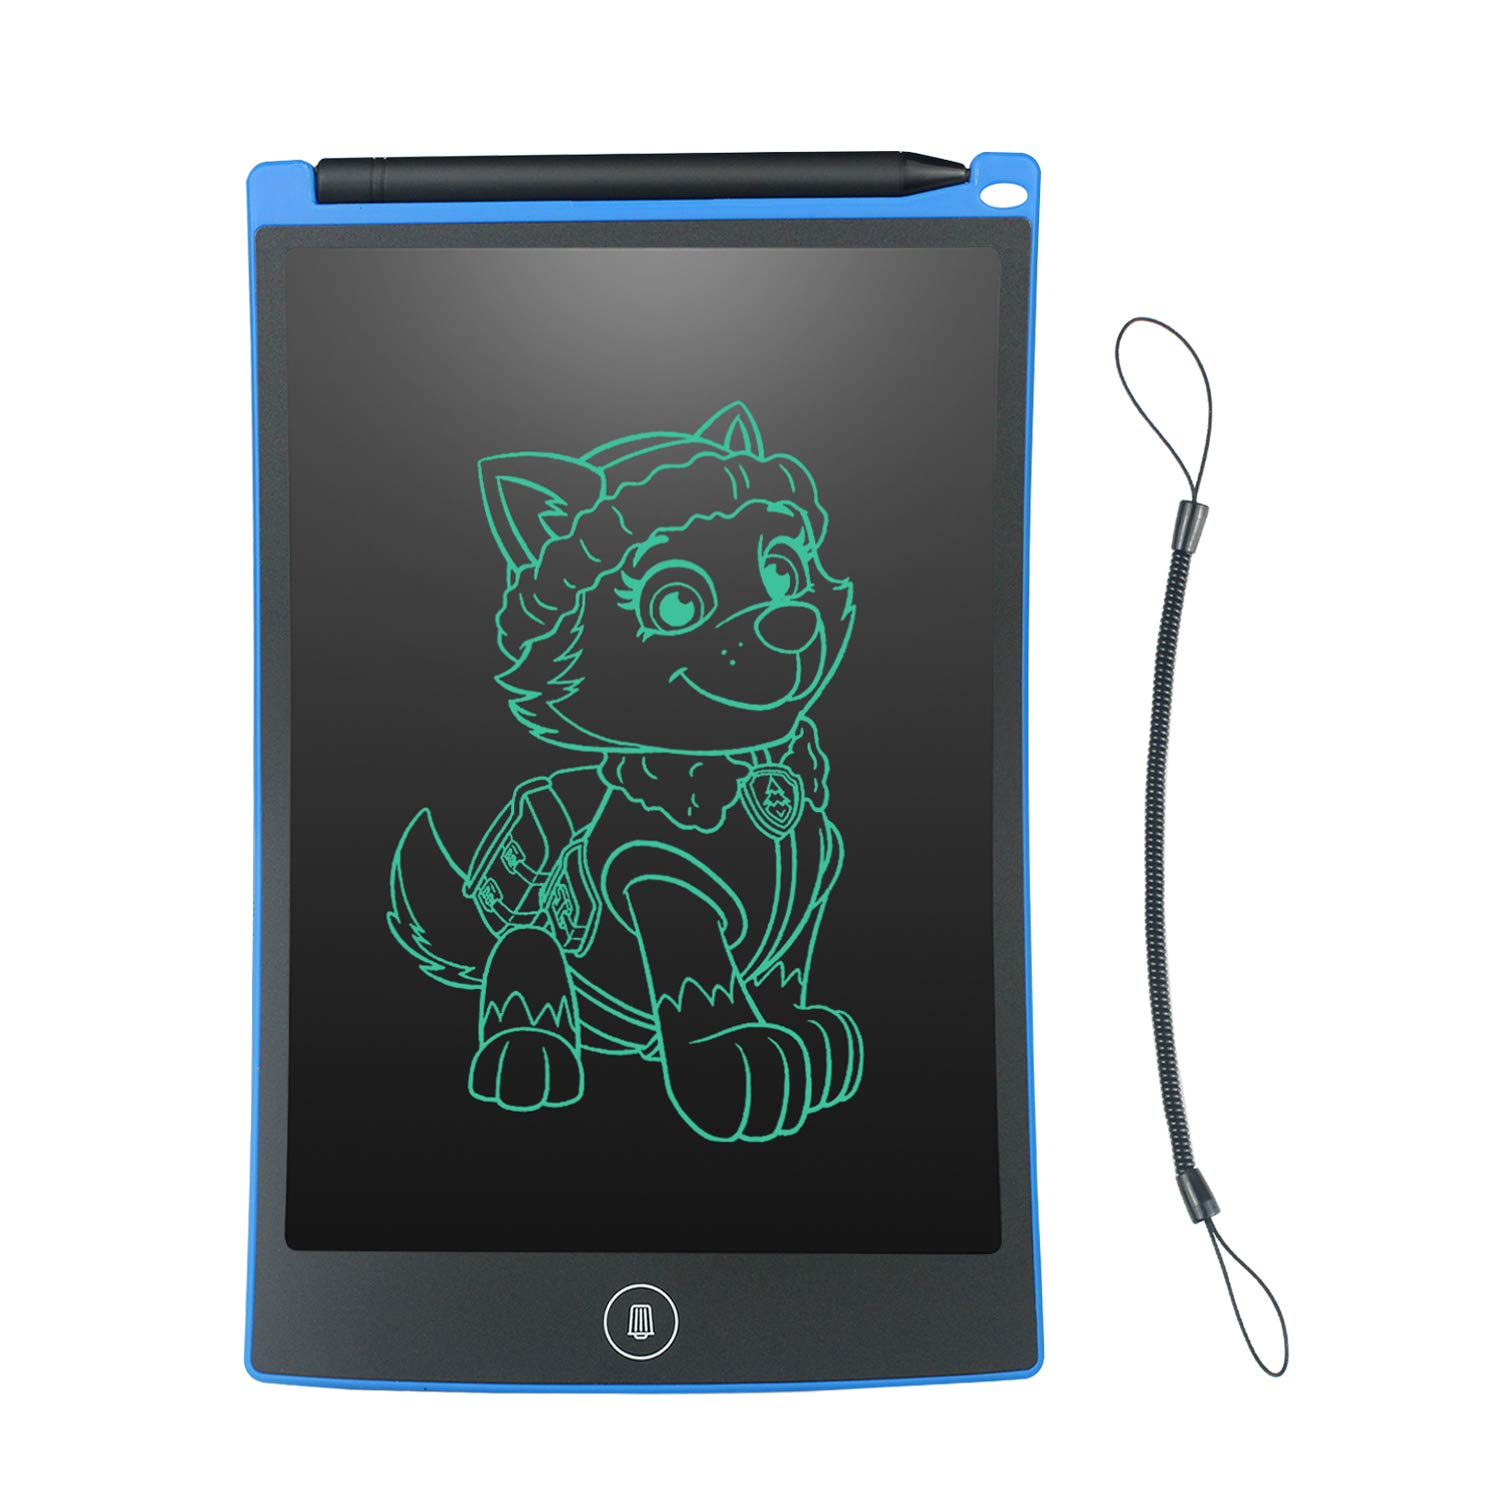 WOBEECO 8.5 Inch LCD Writing Tablet Children Doodle Pad Scribble Toy Family Message Board with 1 Lanyard in Place of Scrap Paper and More